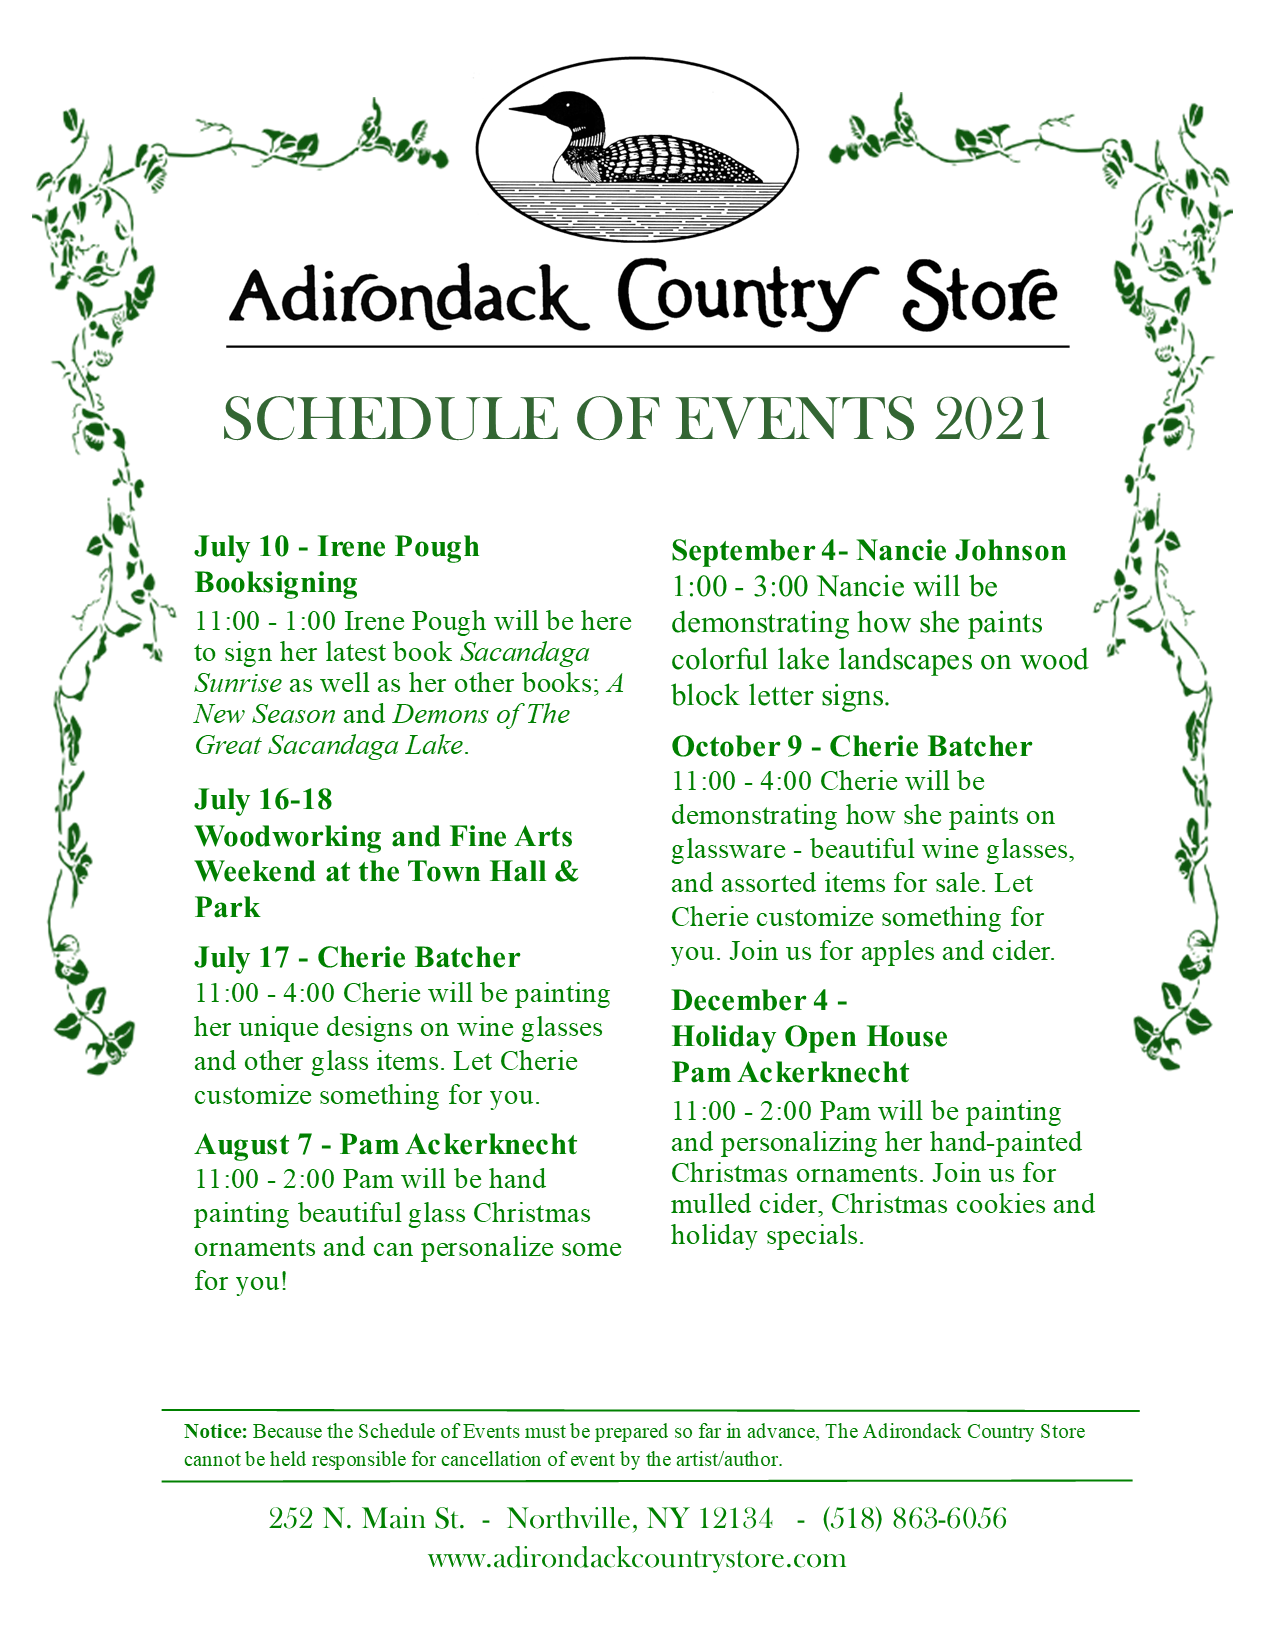 schedule-of-events-2021d.png